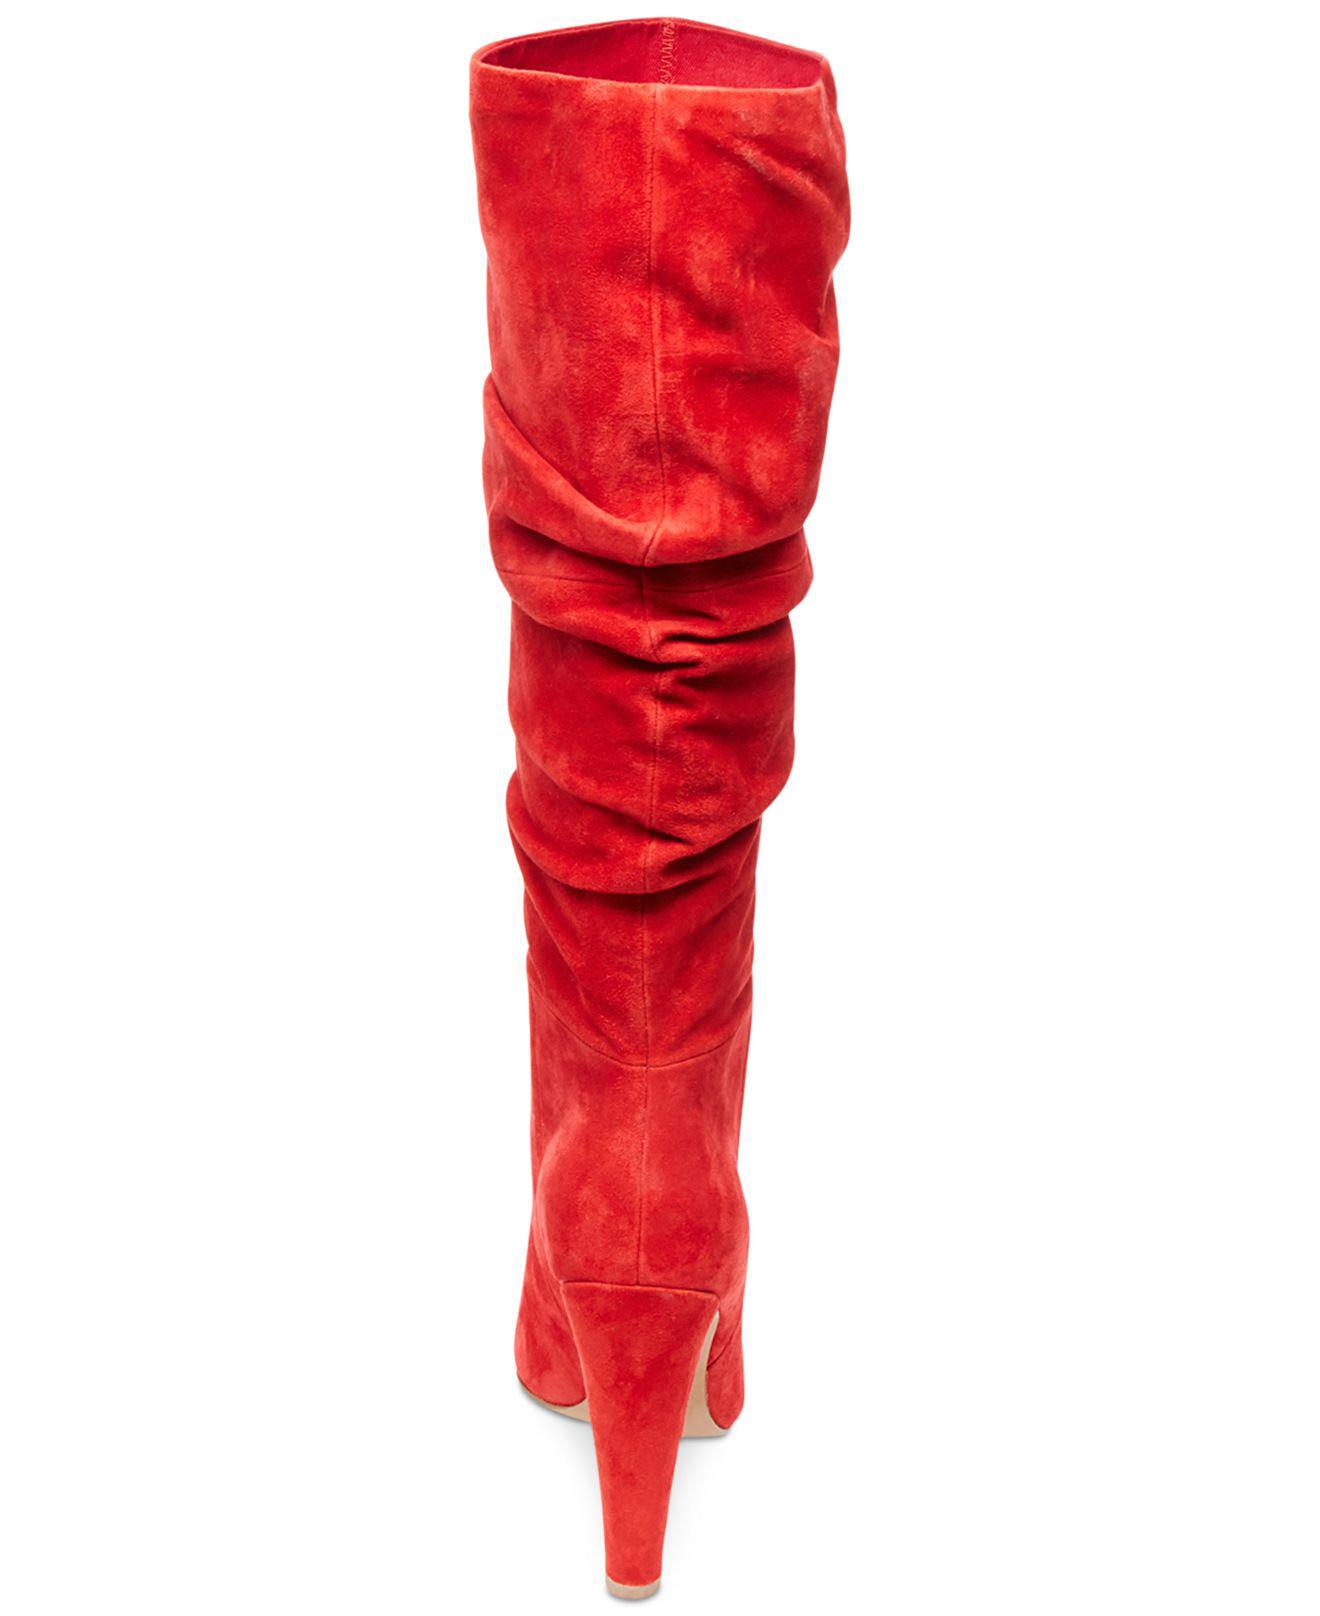 8bc784314f0 Lyst - Steve Madden Women s Carrie Slouchy Boots in Red